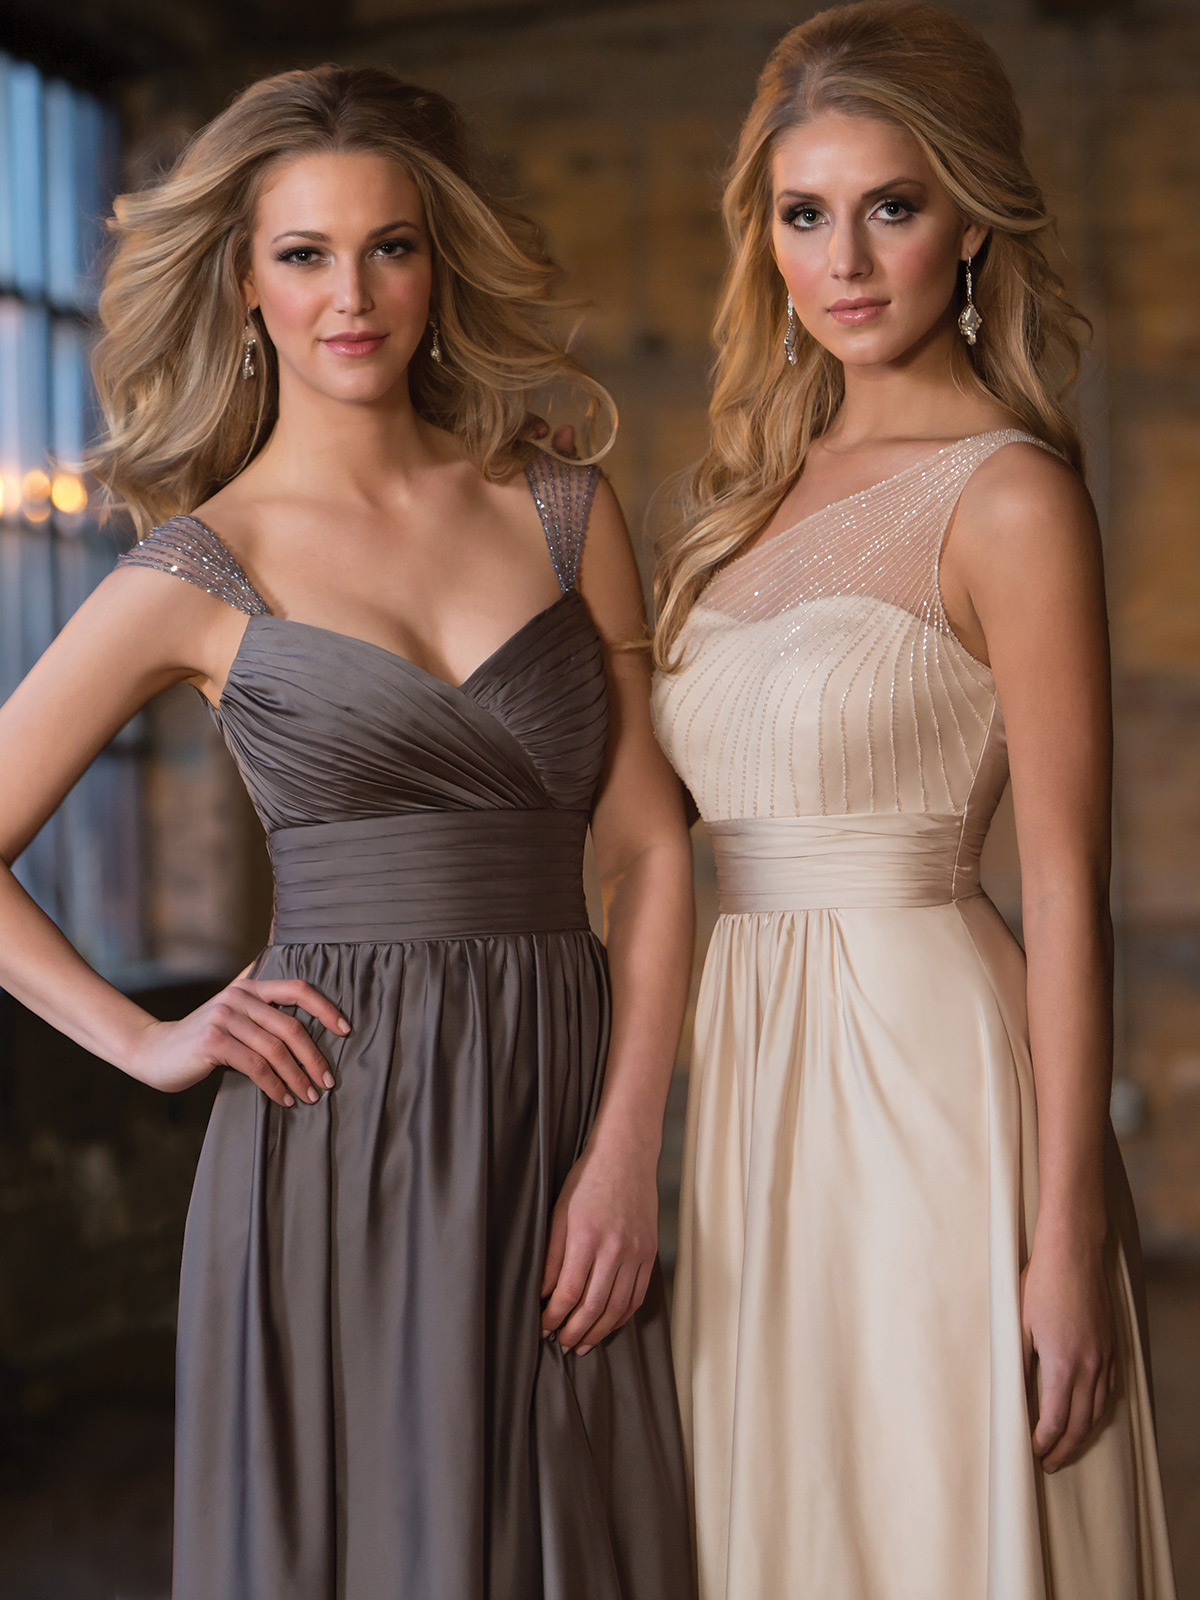 Belsoie bridesmaid dress l164056 dimitradesigns spectacular satin chiffon floor length bridesmaid dress belsoie l164056 ombrellifo Image collections